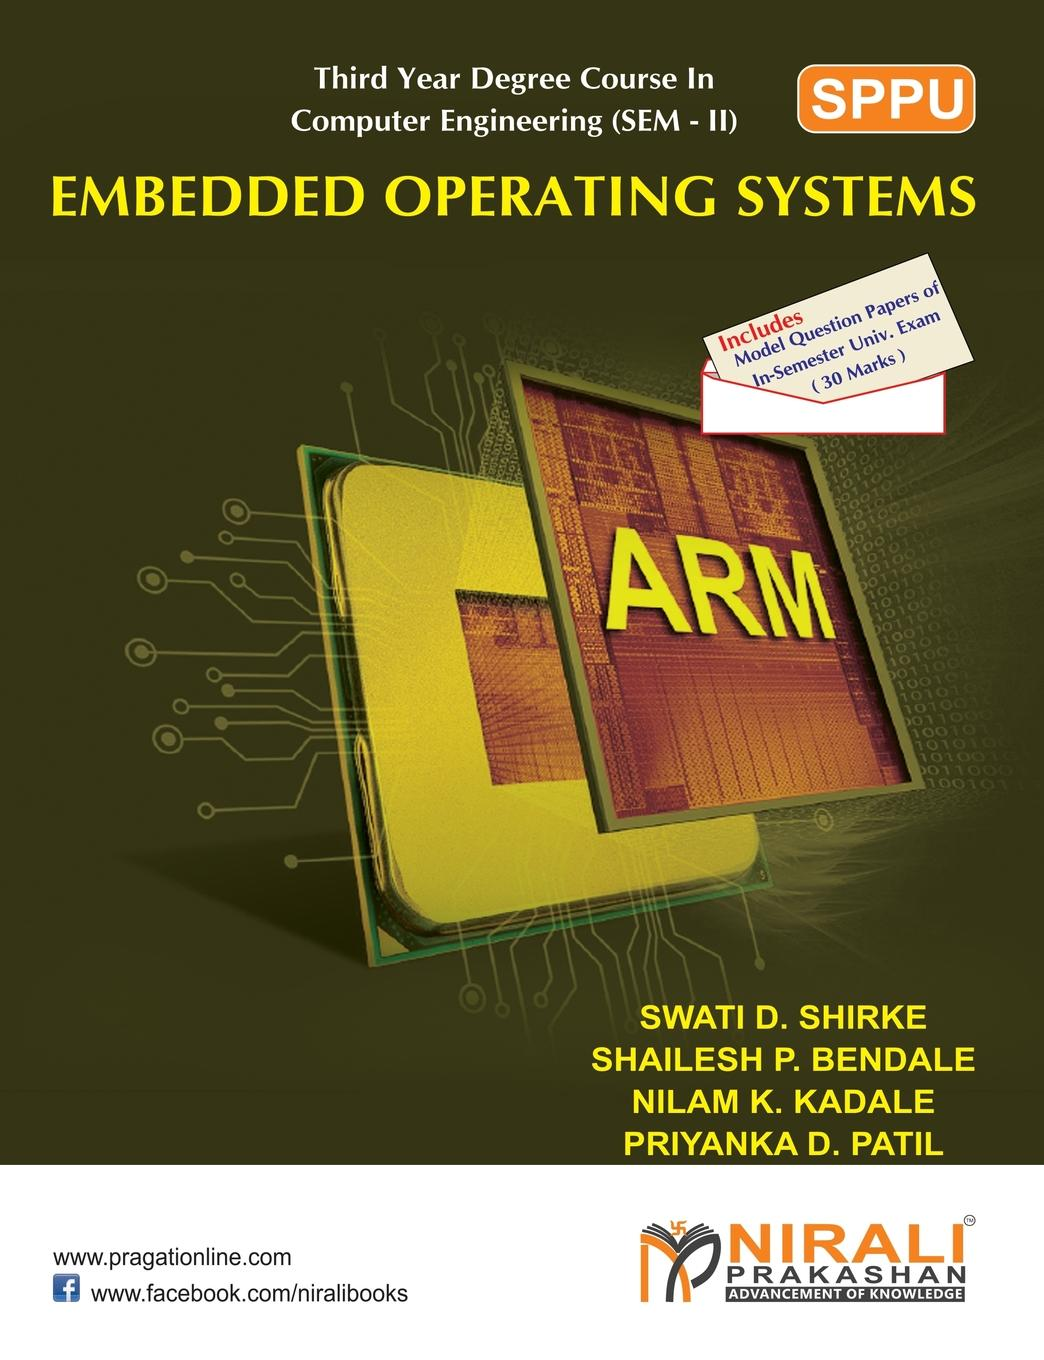 P D PATIL, N K KADALE, S D SHIRKE EMBEDDED OPERATING SYSTEMS цена